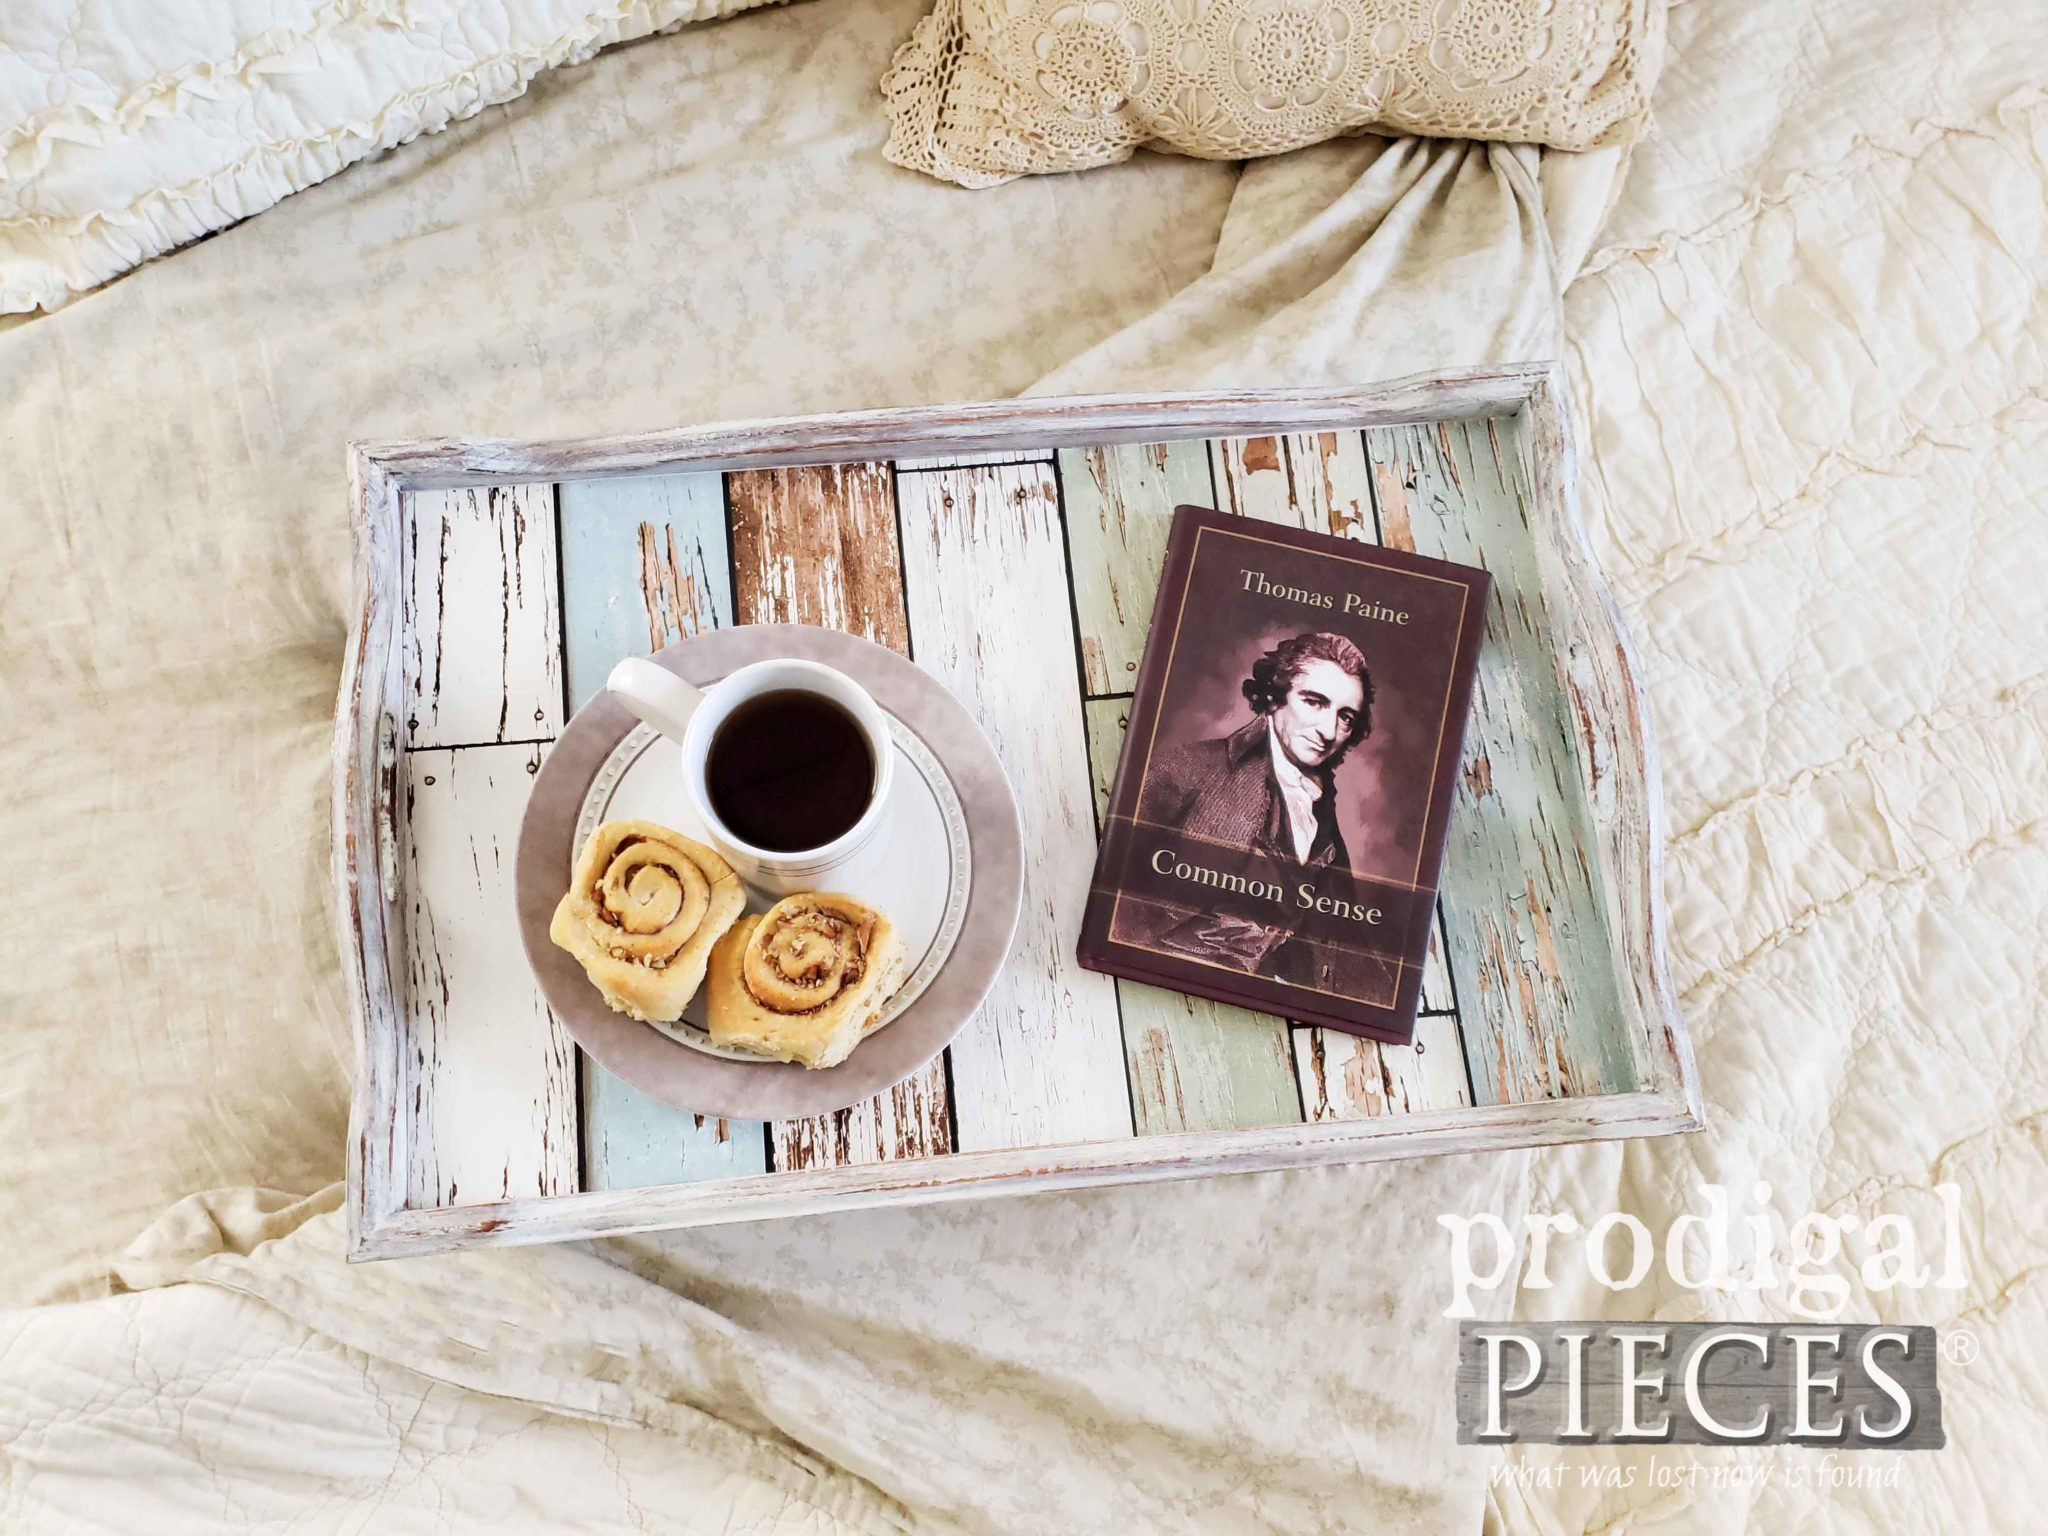 Farmhouse Style Vintage Bed Tray with Chippy Wood Lining by Larissa of Prodigal Pieces | prodigalpieces.com #prodigalpieces #farmhouse #home #shopping #diy #homedecor #vintage #homedecorideas